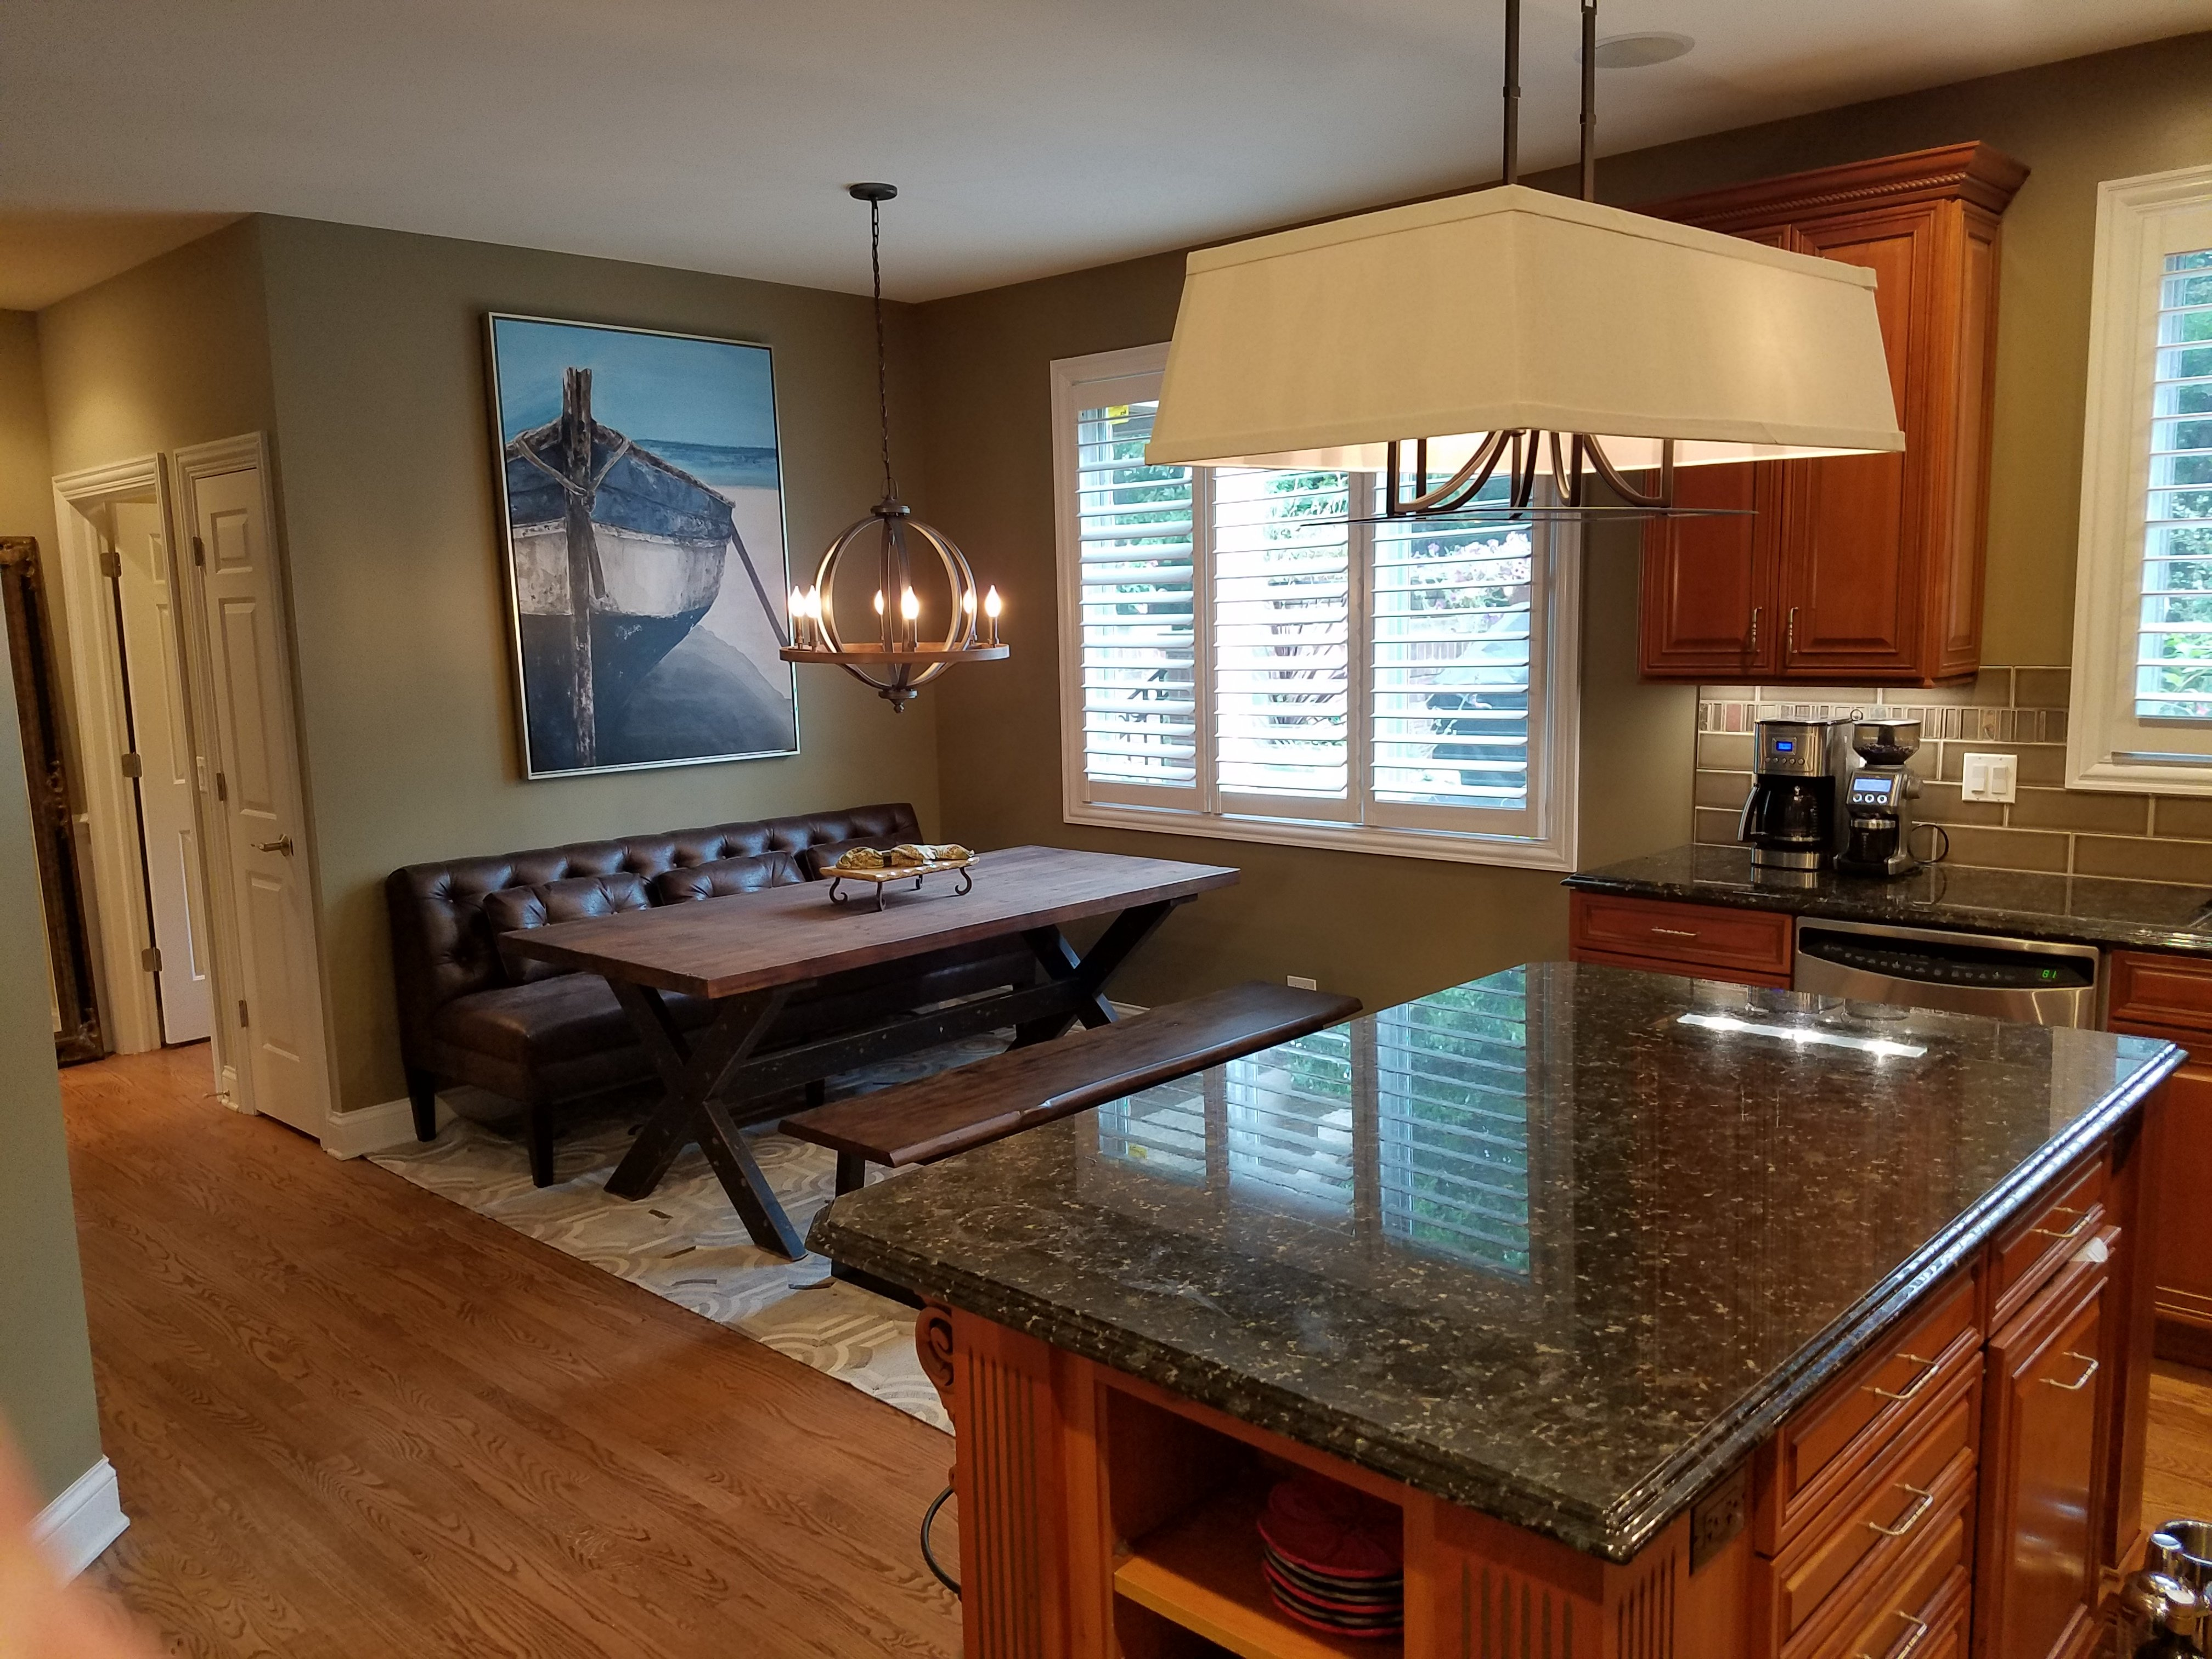 Kitchen Remodeling and Design, eat-in kitchen layout, kitchen lighting ideas